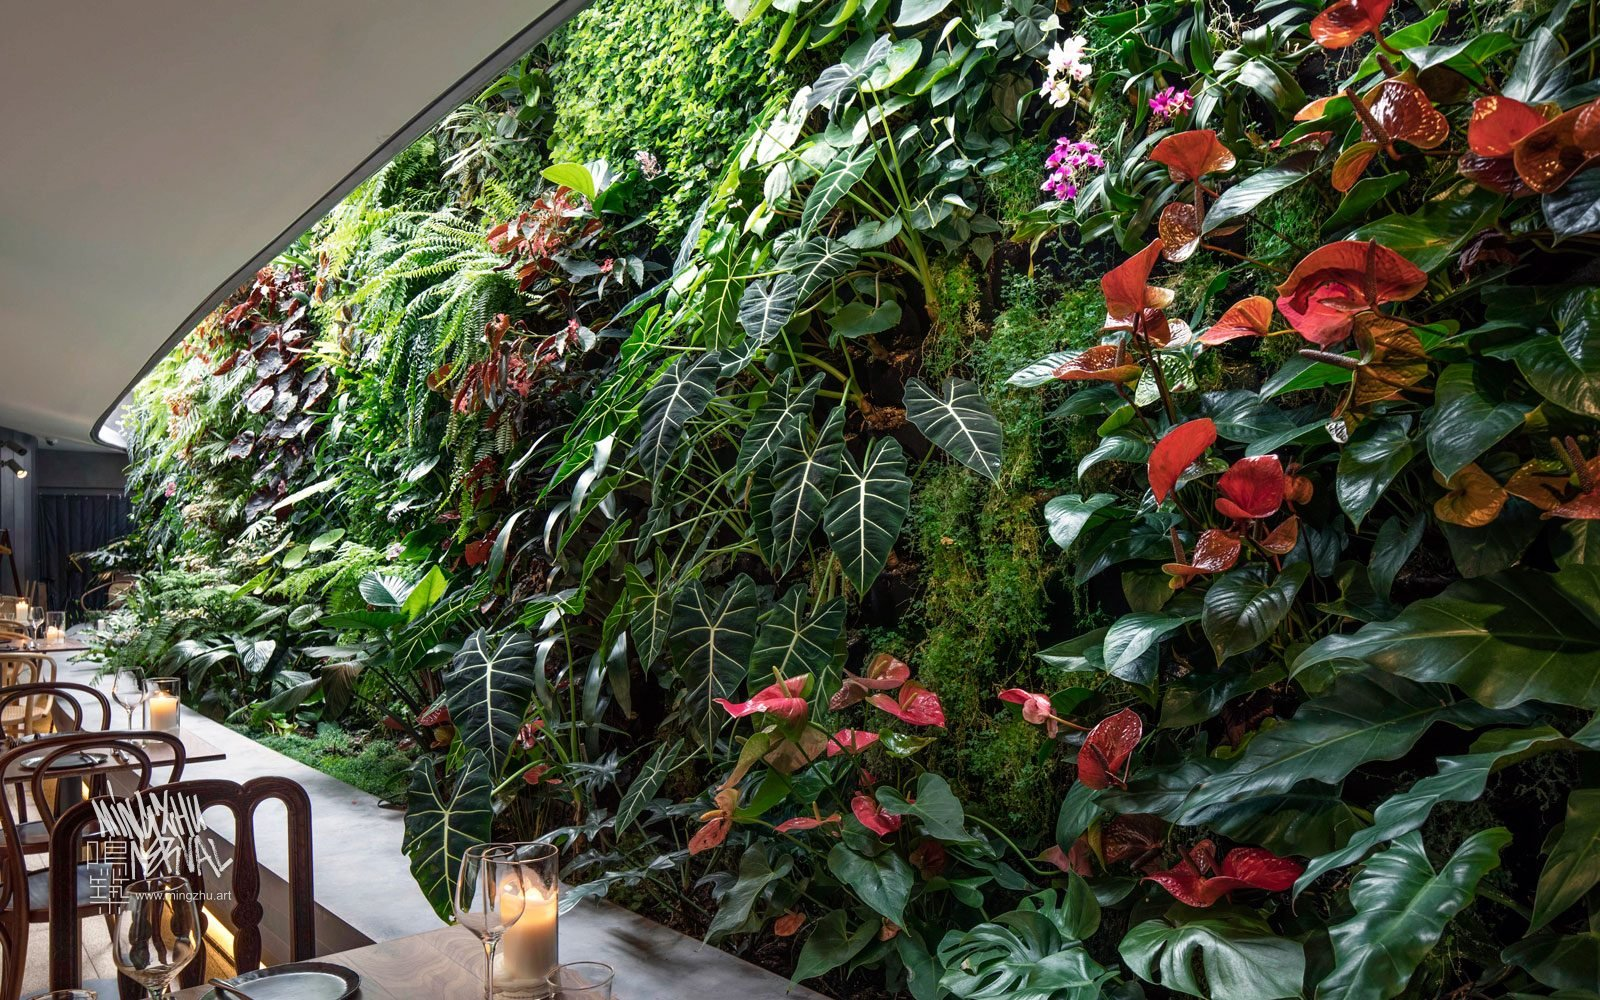 At Mingzhu Nerval, we thrive at creating the most beautiful vertical gardens in the world. For Bloom, we created a wonderful garden restaurant design - Shanghai, 2018.